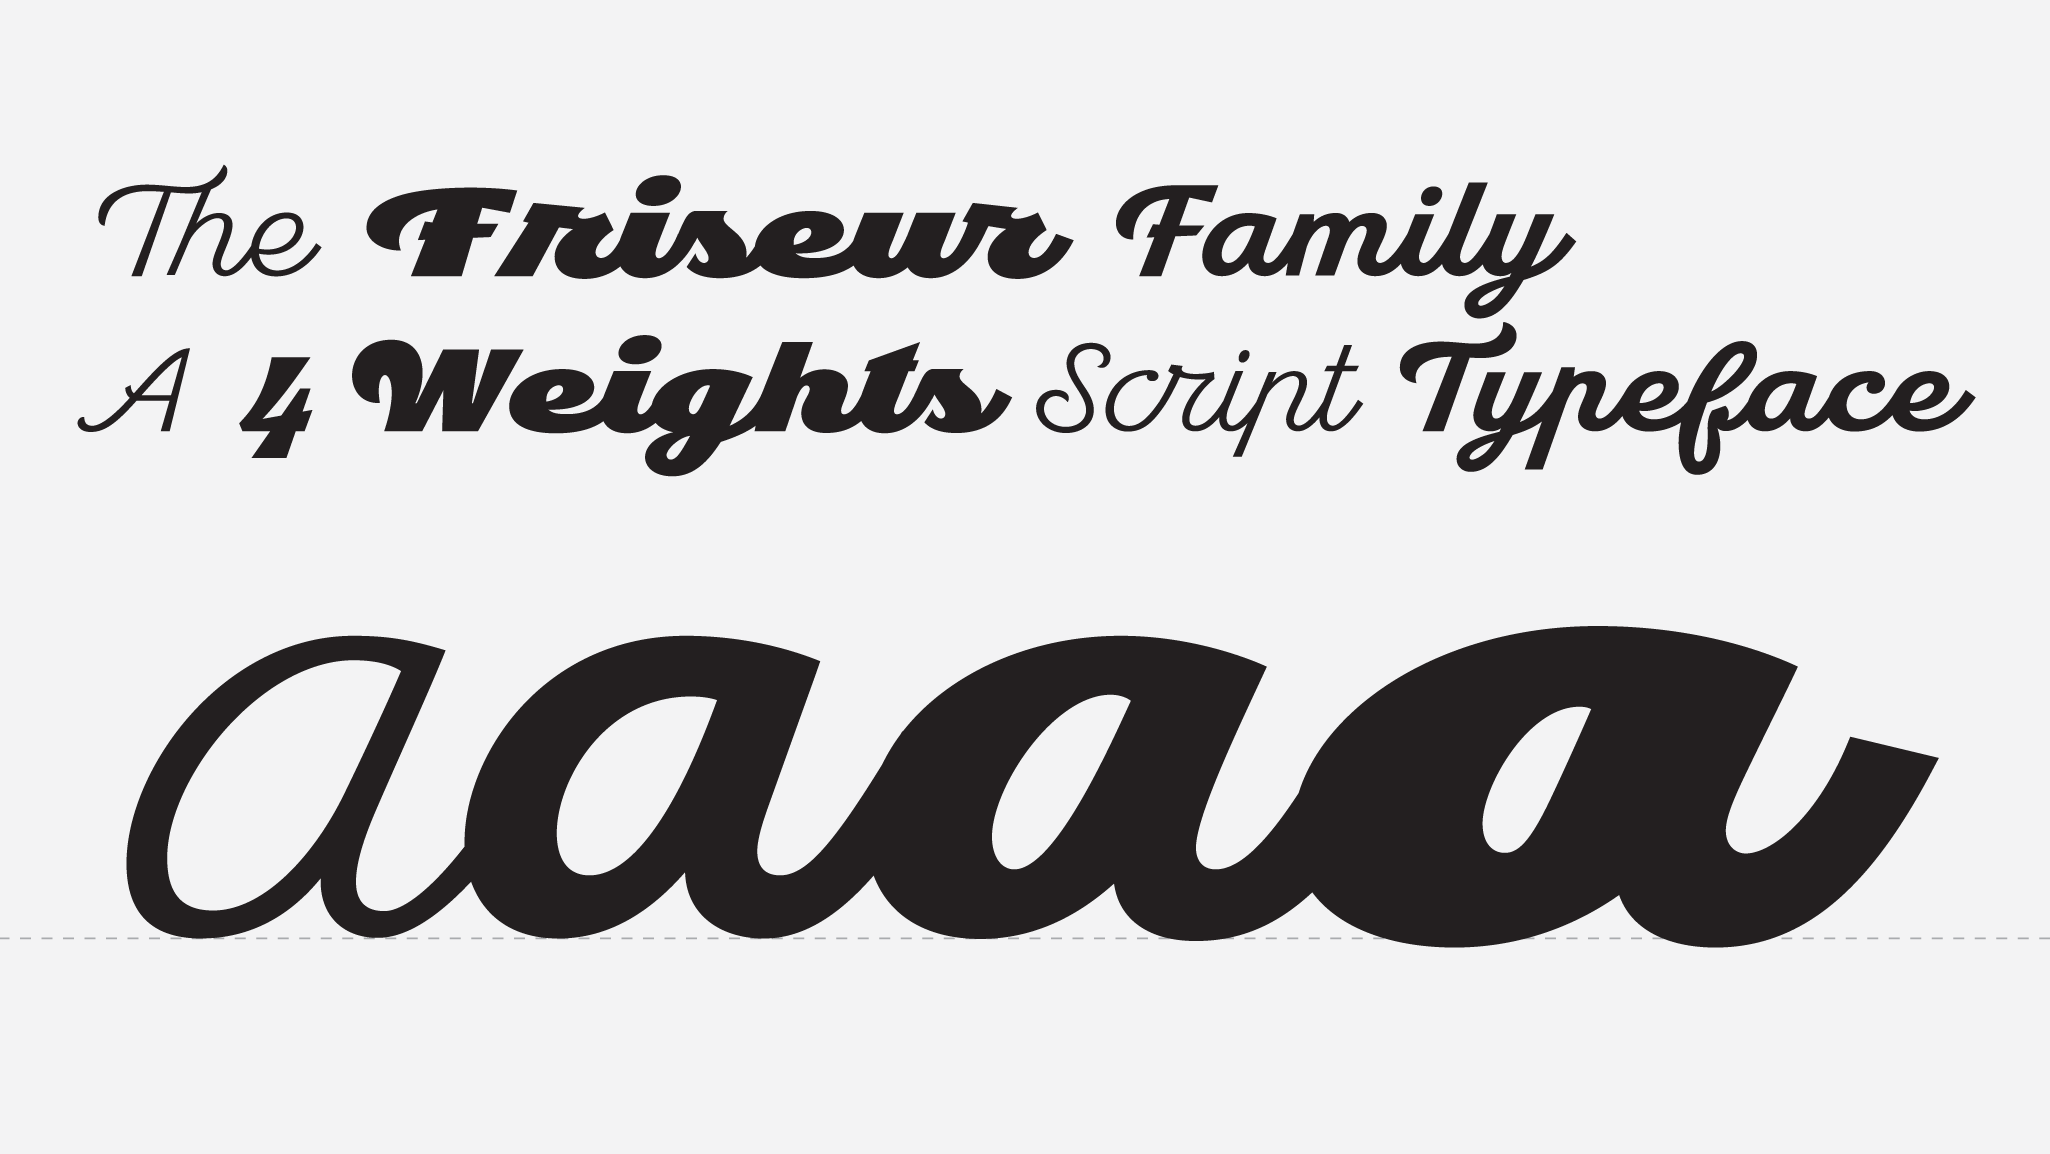 Friseur, a new script typeface designed by Andrei Robu. Available on www.typeverything.com